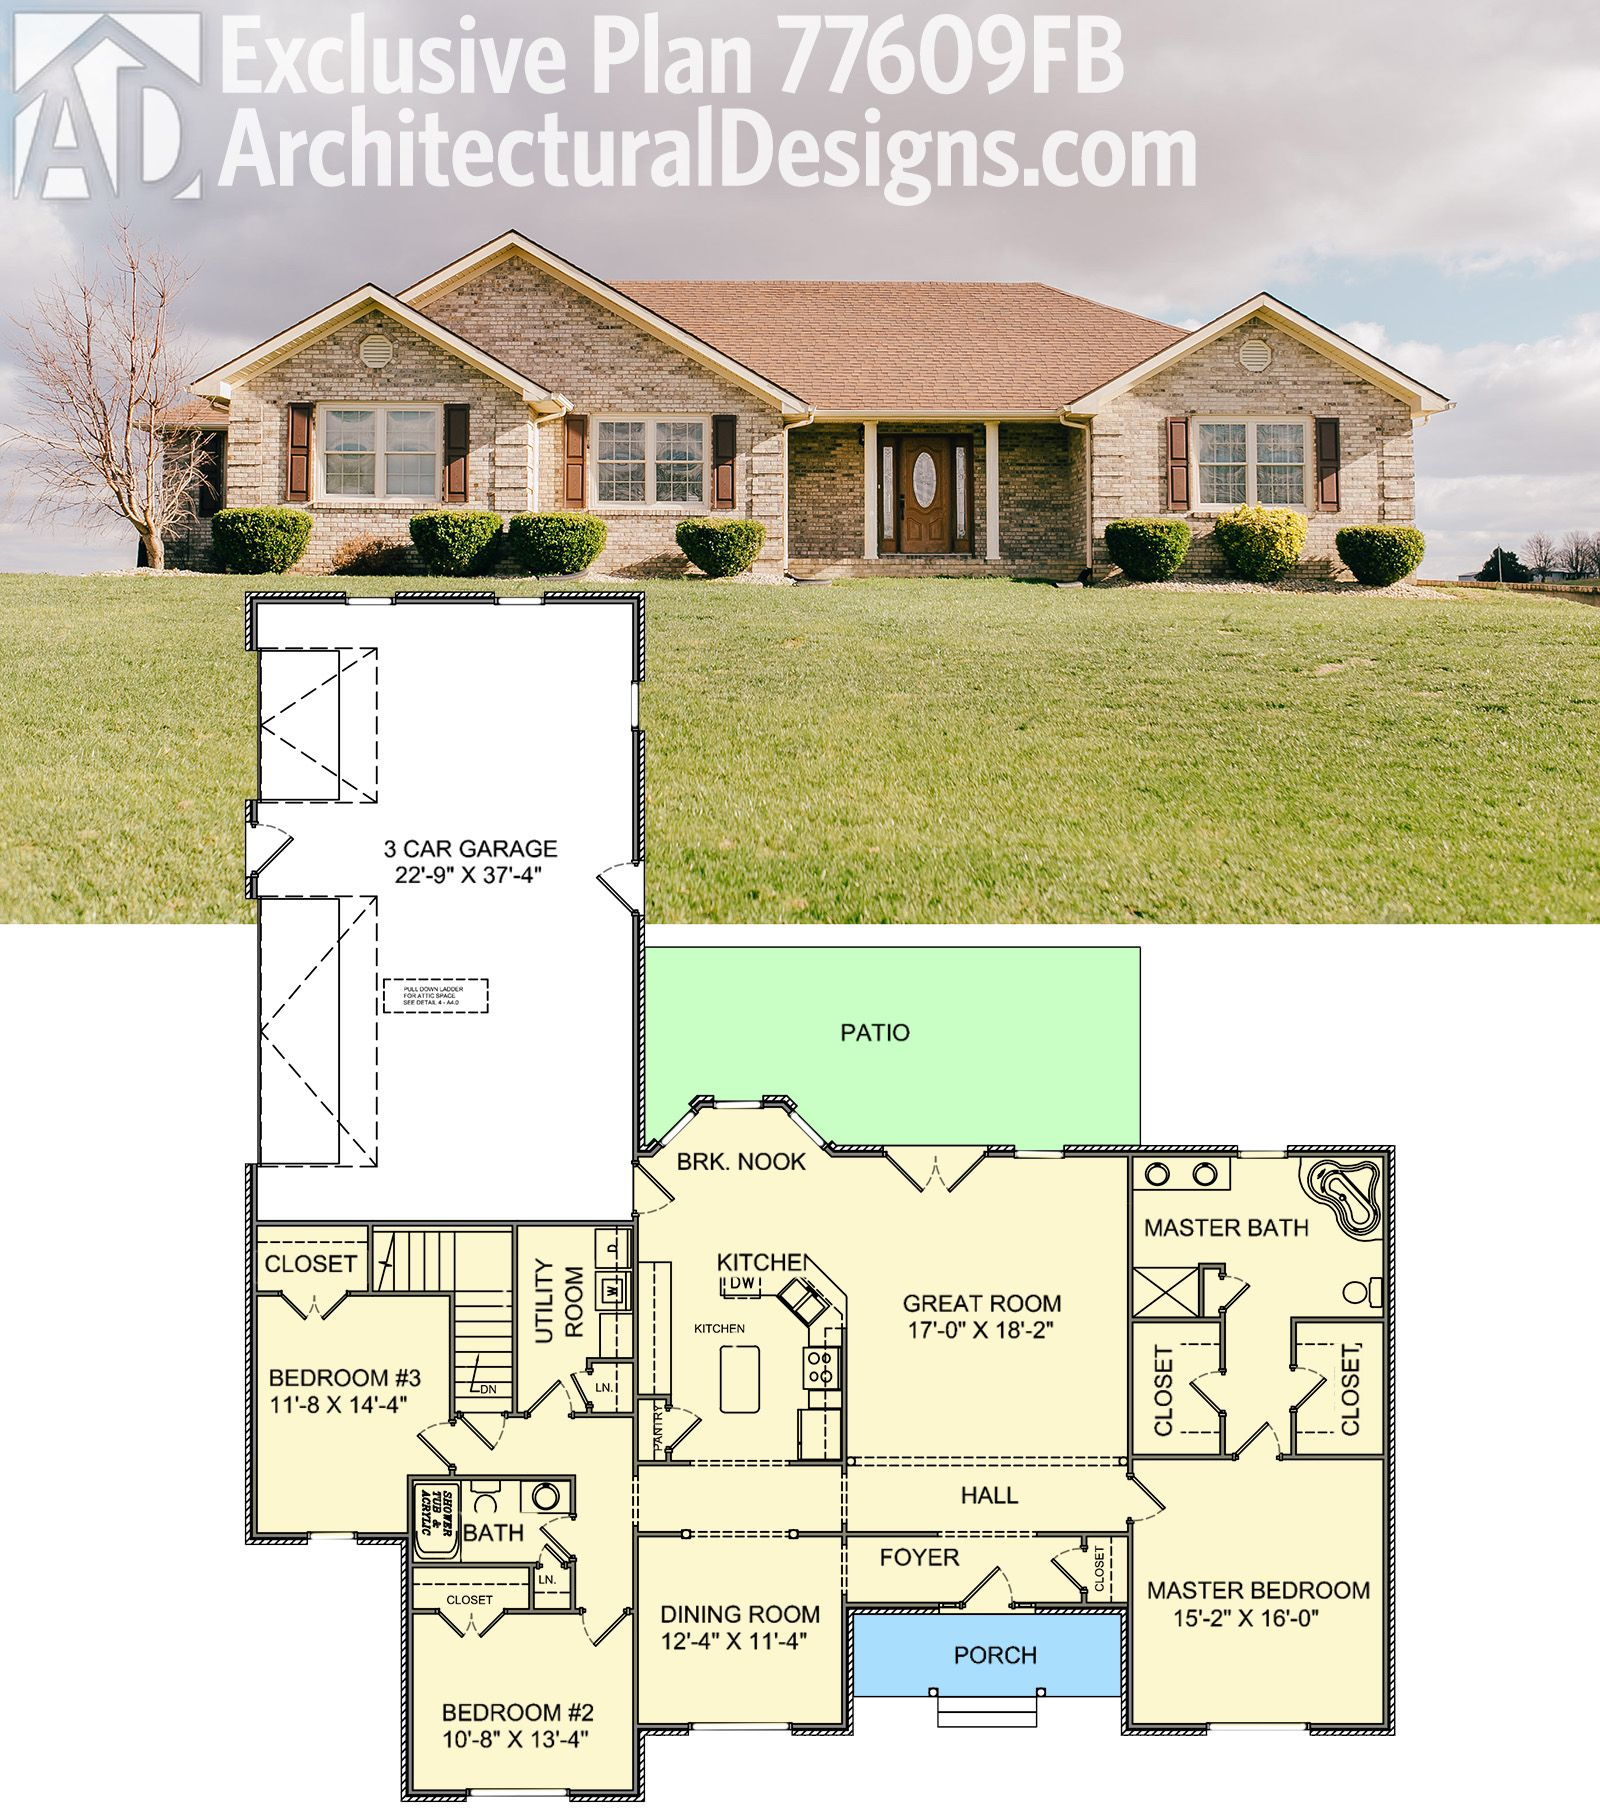 How To Divide An Open Plan Space 9 Ideas: Architectural Designs Exclusive House Plan 77609FB Gives